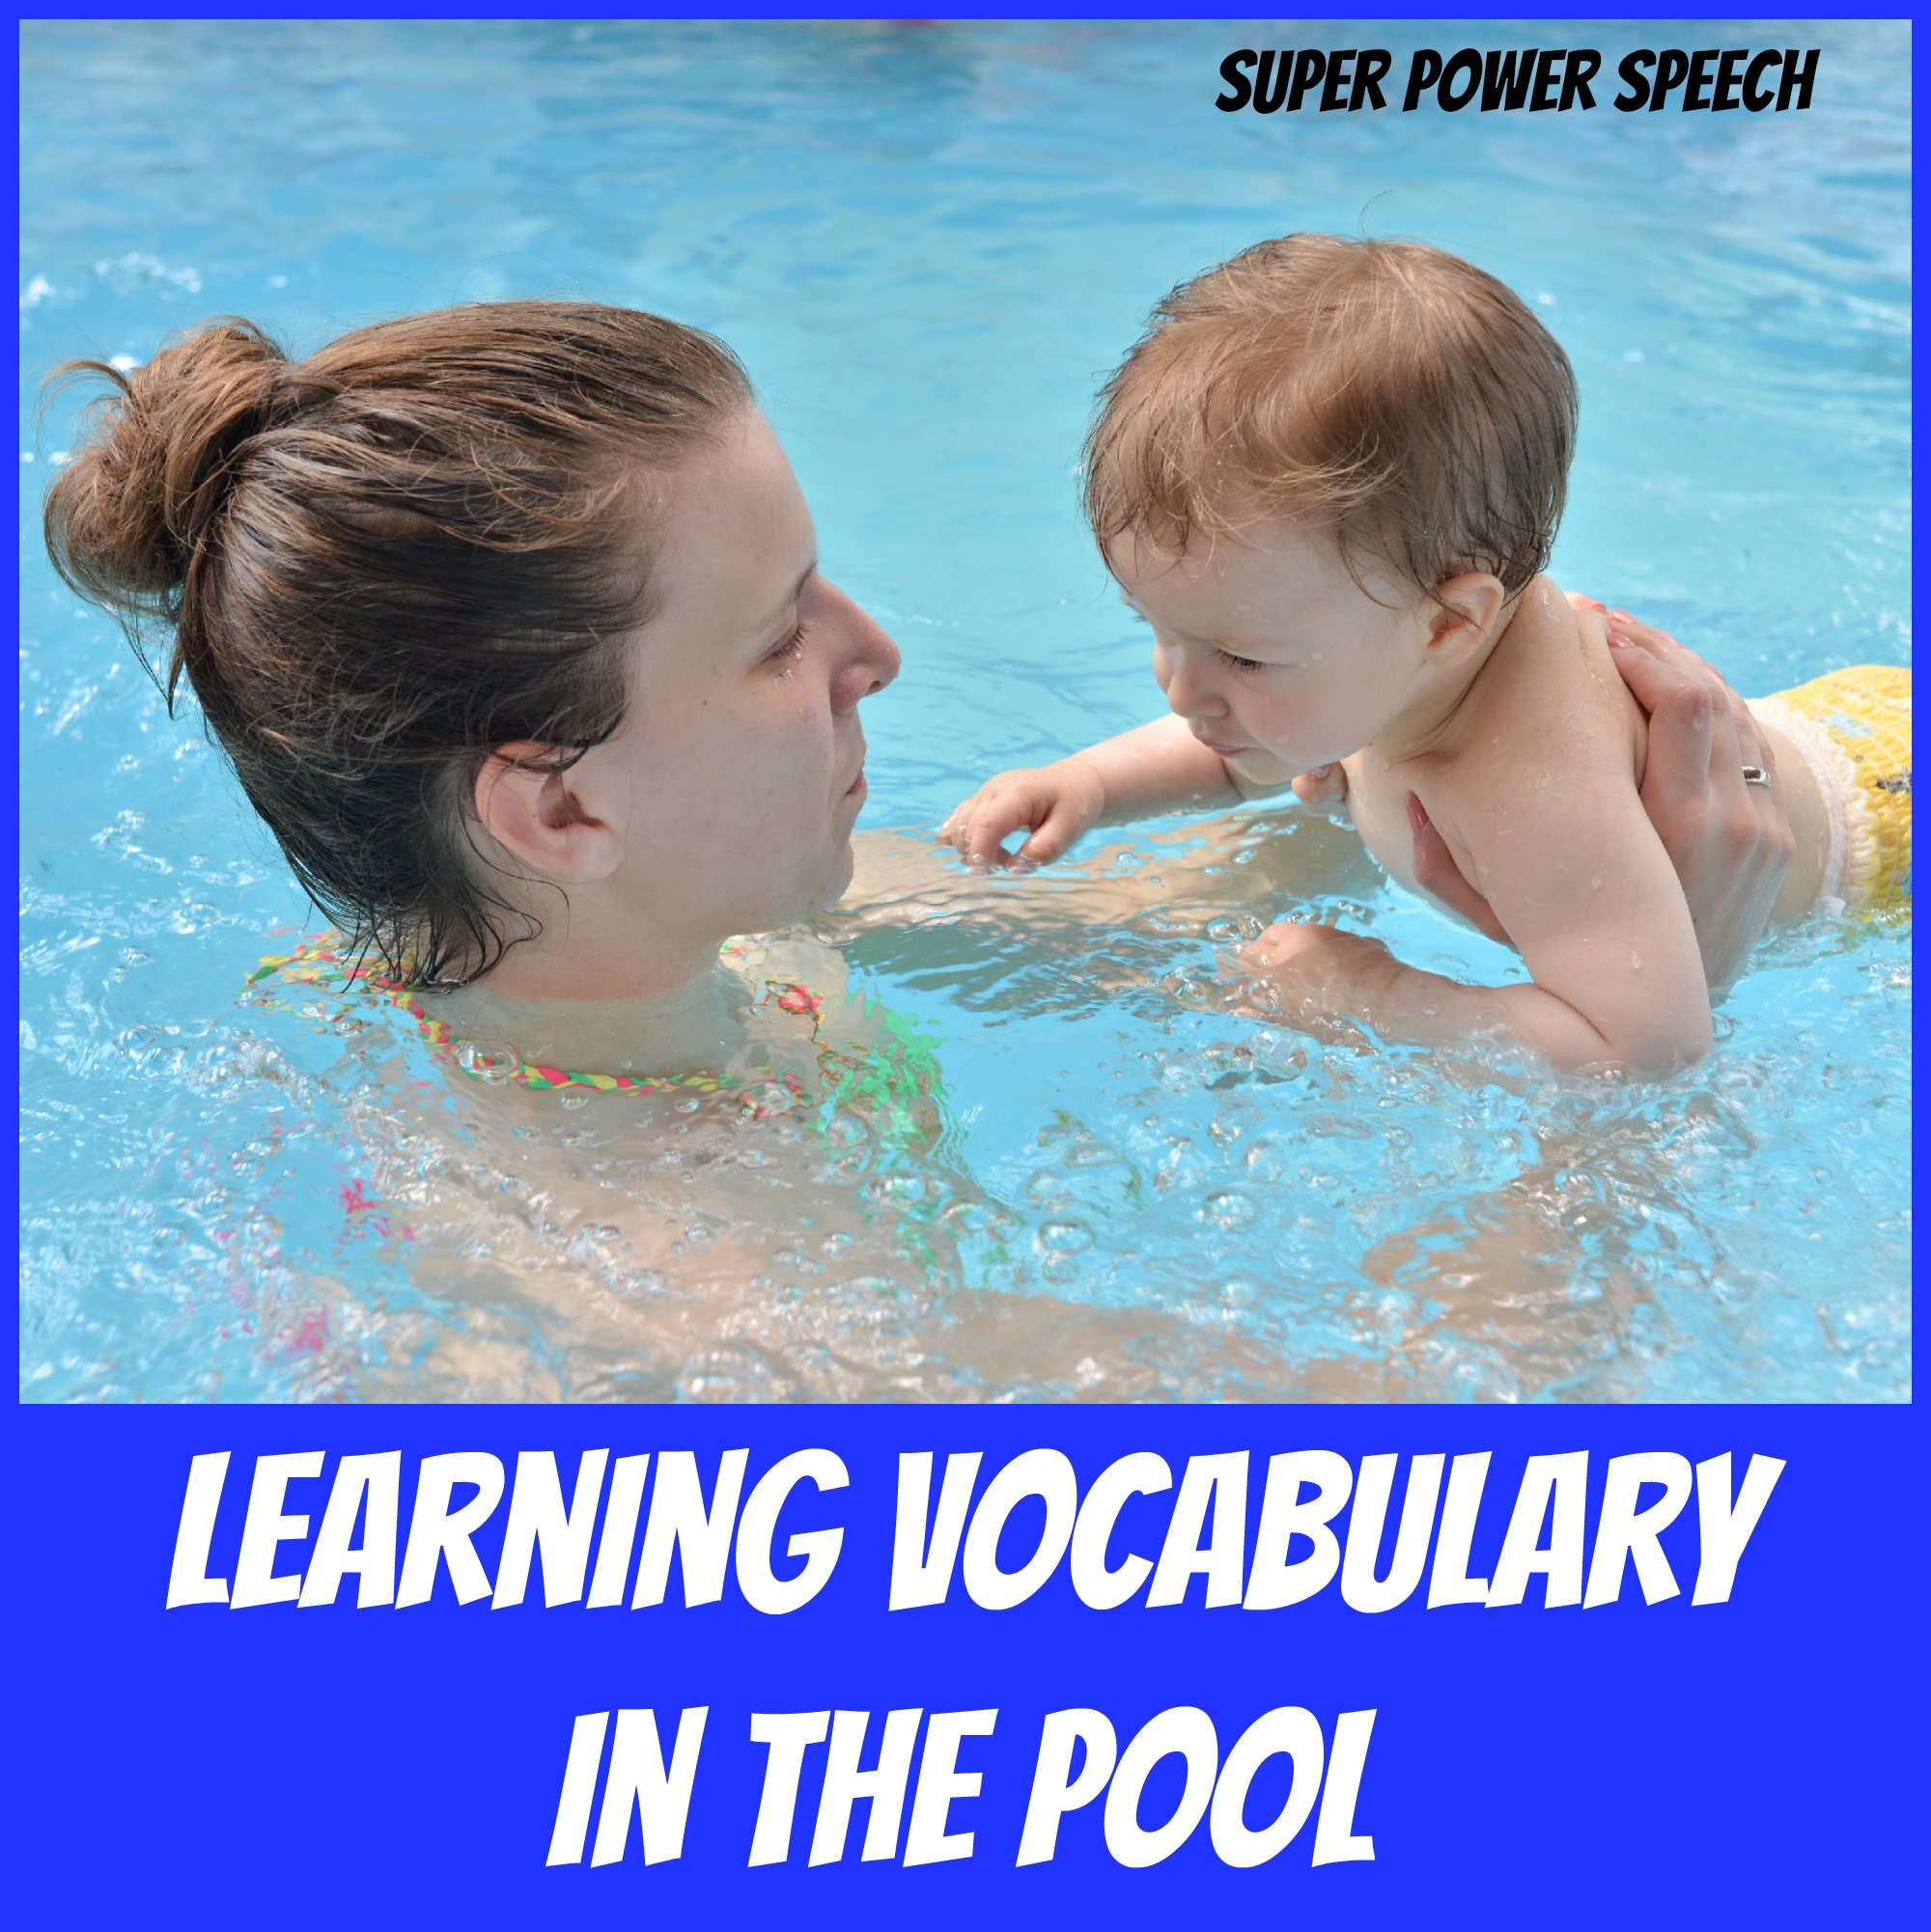 Learning Vocabulary in the Pool